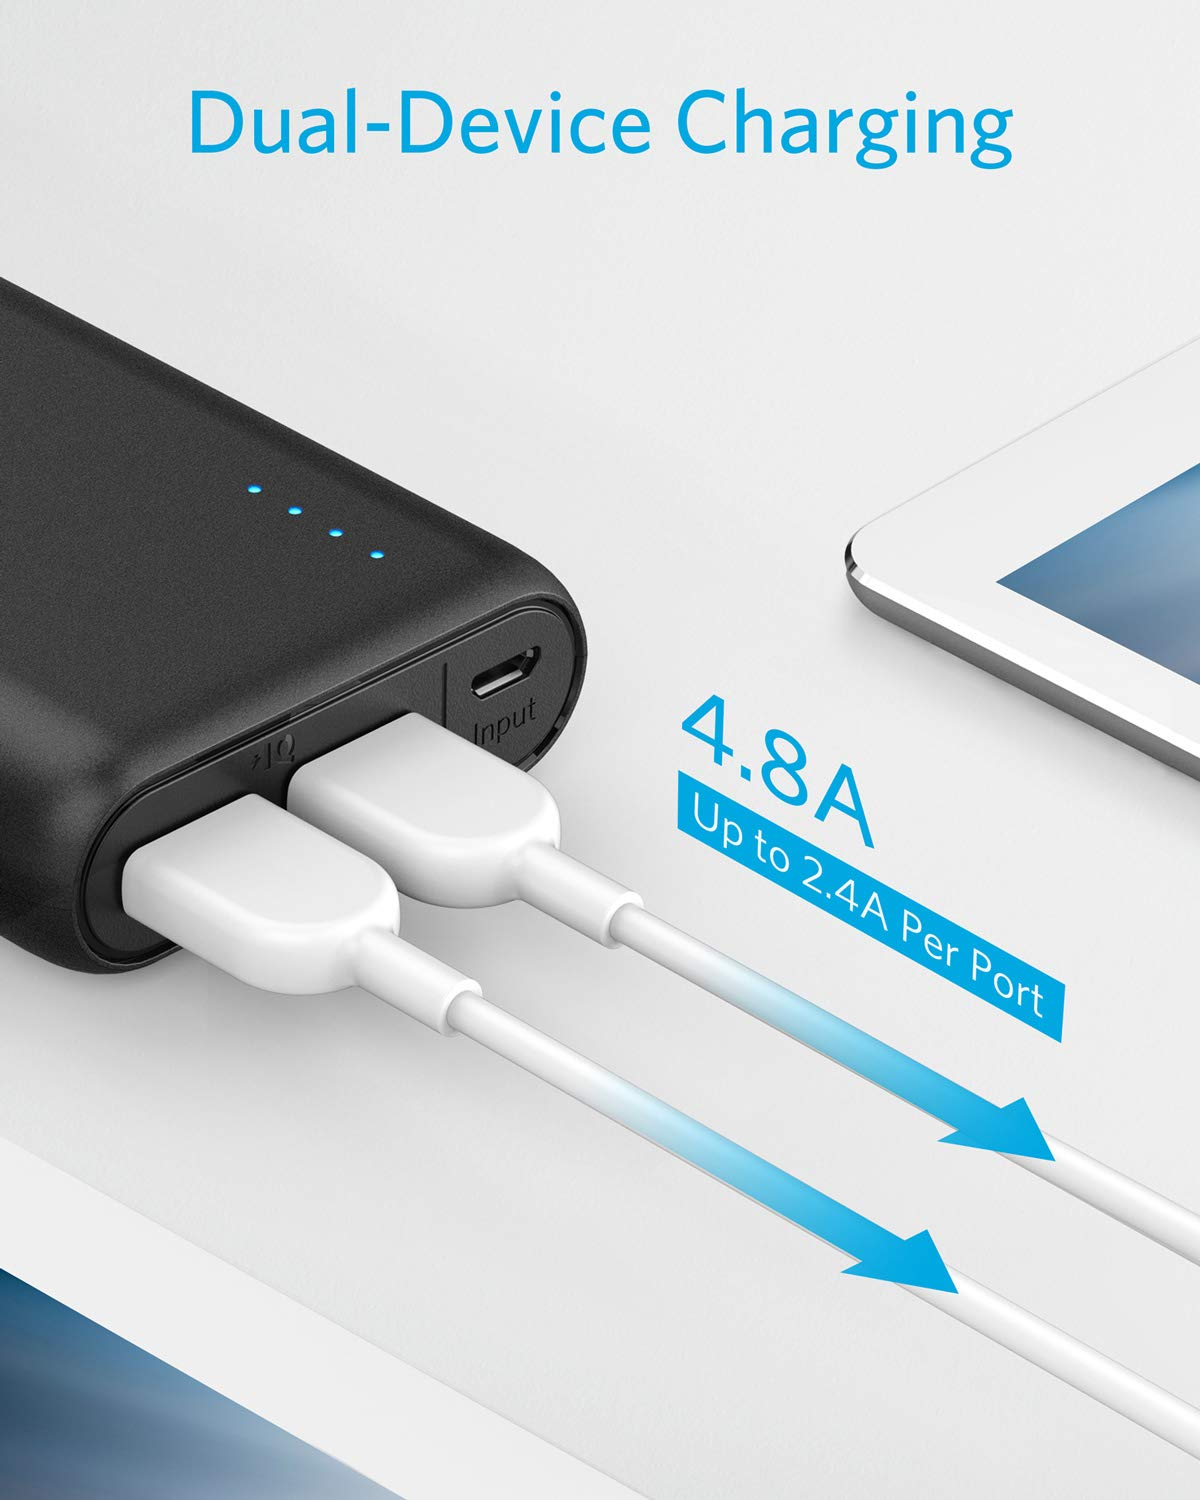 Portable Charger Anker PowerCore 20100mAh - Ultra High Capacity Power Bank with 4.8A Output, External Battery Pack for iPhone, iPad & Samsung Galaxy & More (Black) by Anker (Image #4)